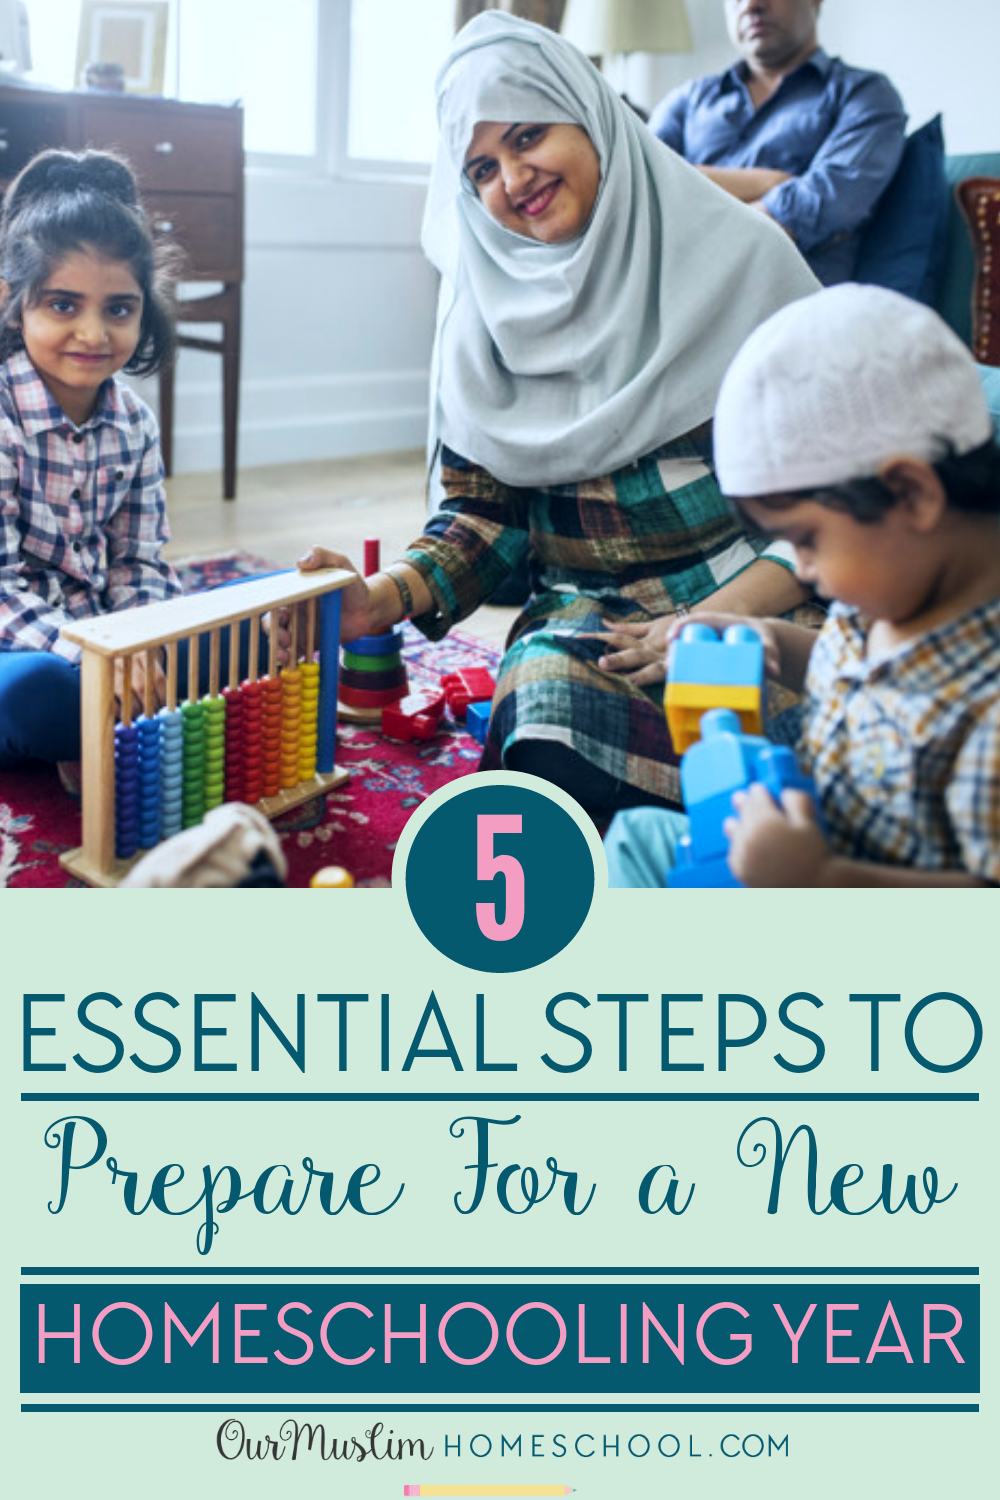 How to Homeschool - 5 Essential steps to start homeschooling! From Our Muslim Homeschool